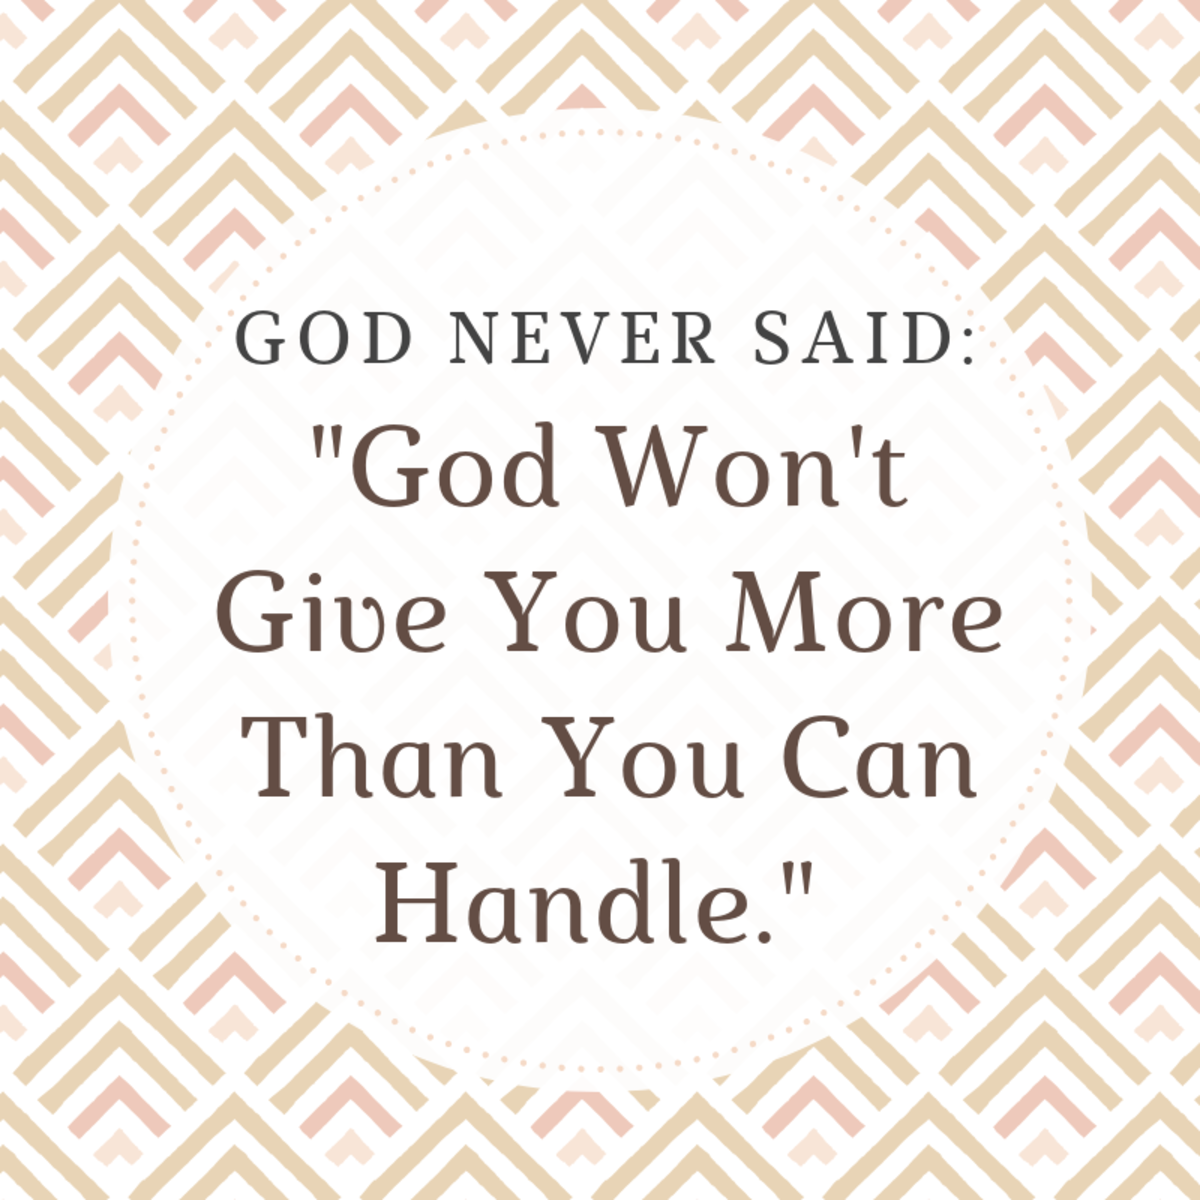 god-wont-put-no-more-on-you-than-you-can-bear-is-not-in-the-bible